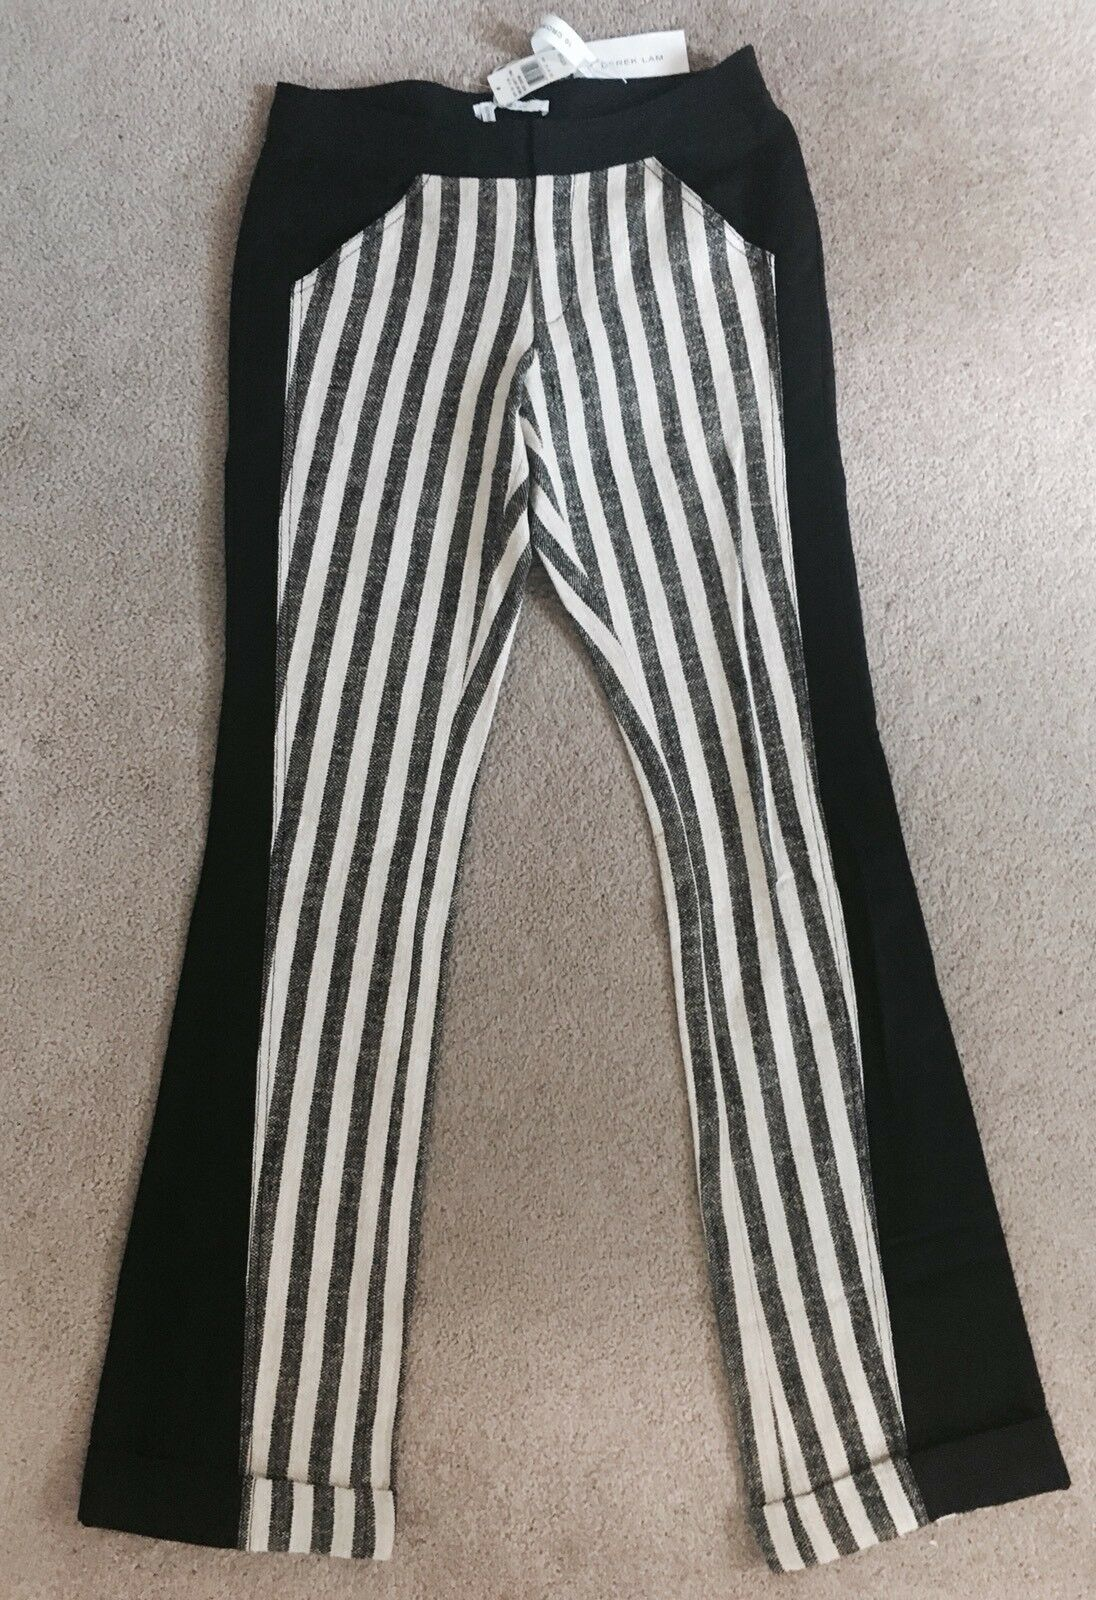 375 NWT Derek Lam 10 Crosby Cuffed Pants Linen Stripe Wool Trouser Sz Small